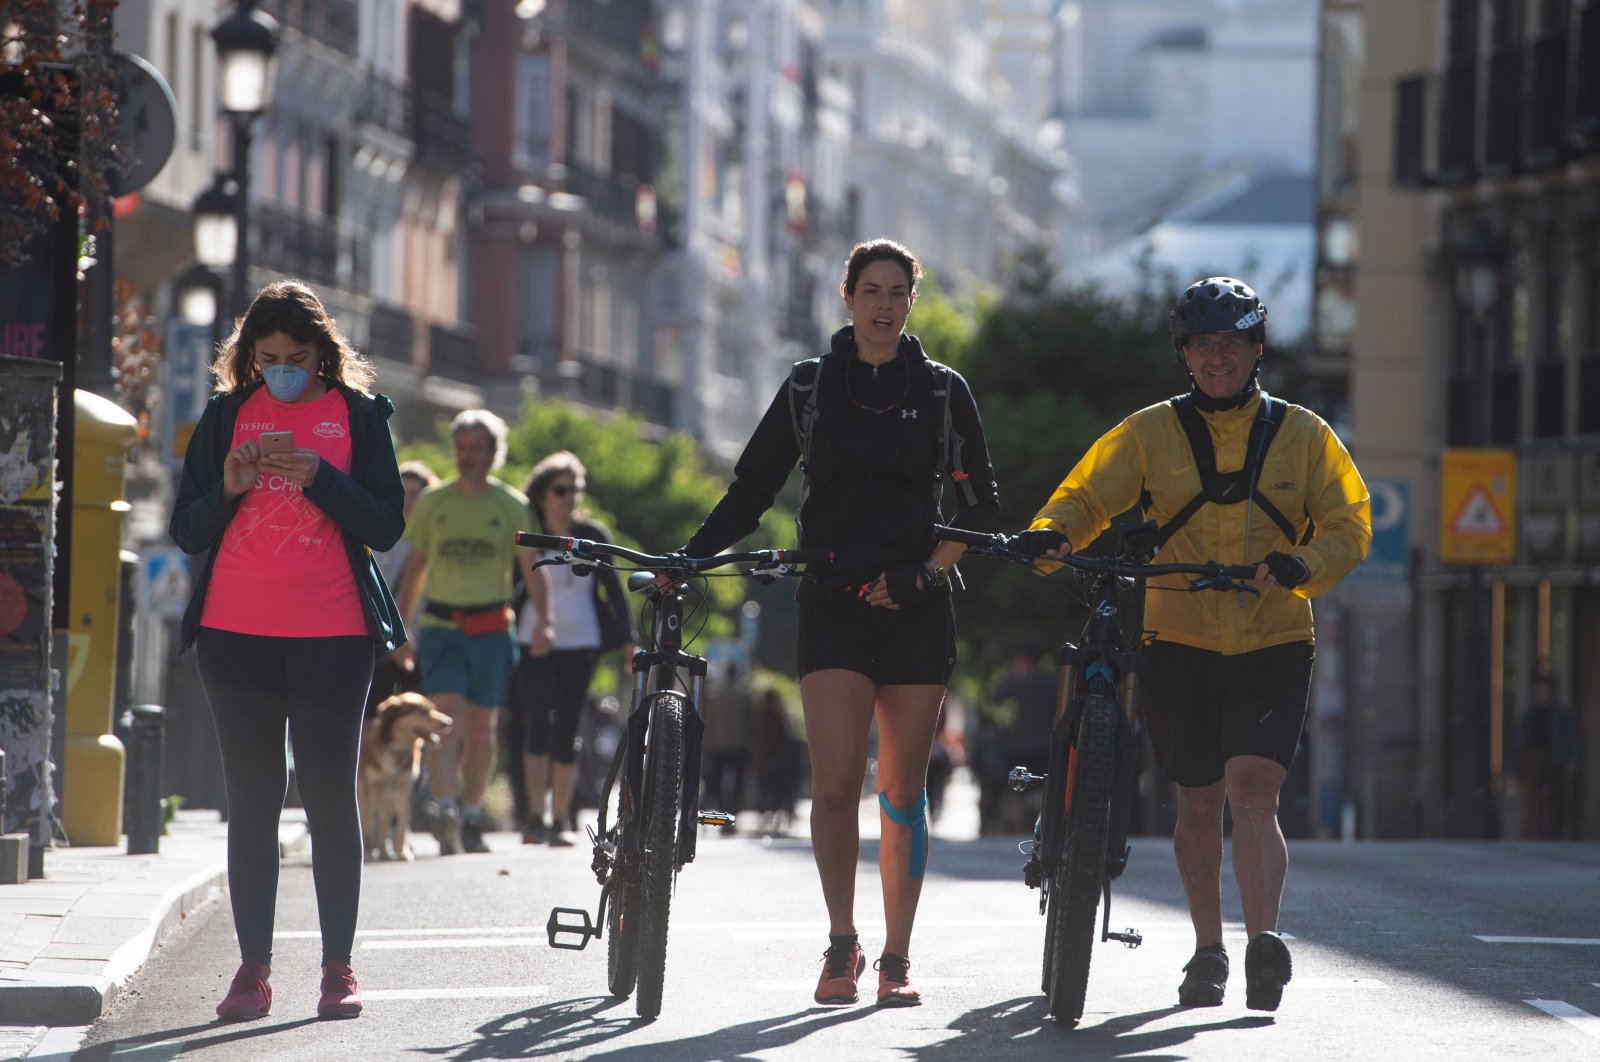 People walk in Madrid during the hours allowed by the government to exercise, amid the national lockdown to prevent the spread of the COVID-19. Madrid, Spain. May 10, 2020 (AFP Photo)